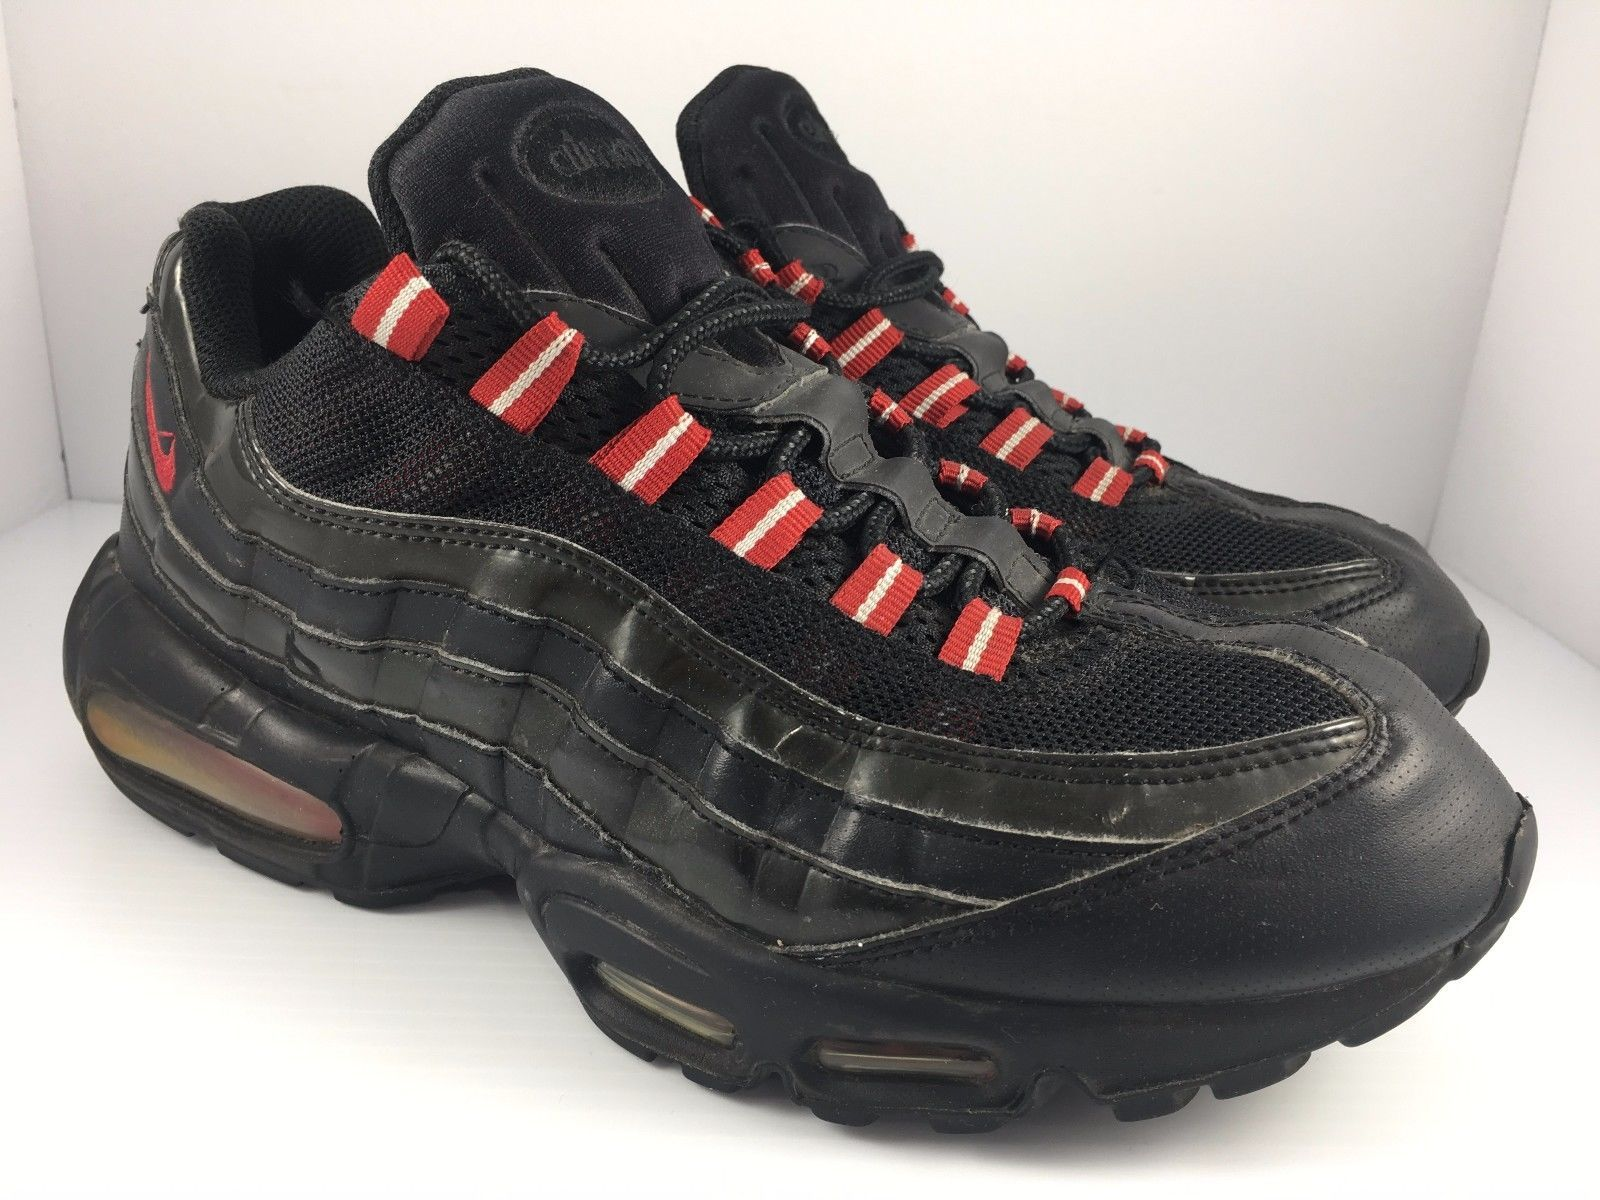 various colors 933c8 a1e13 ... Nike Air Max 95 size 10.5 Black Patent Black + Varsity Red Sneakers   609048-